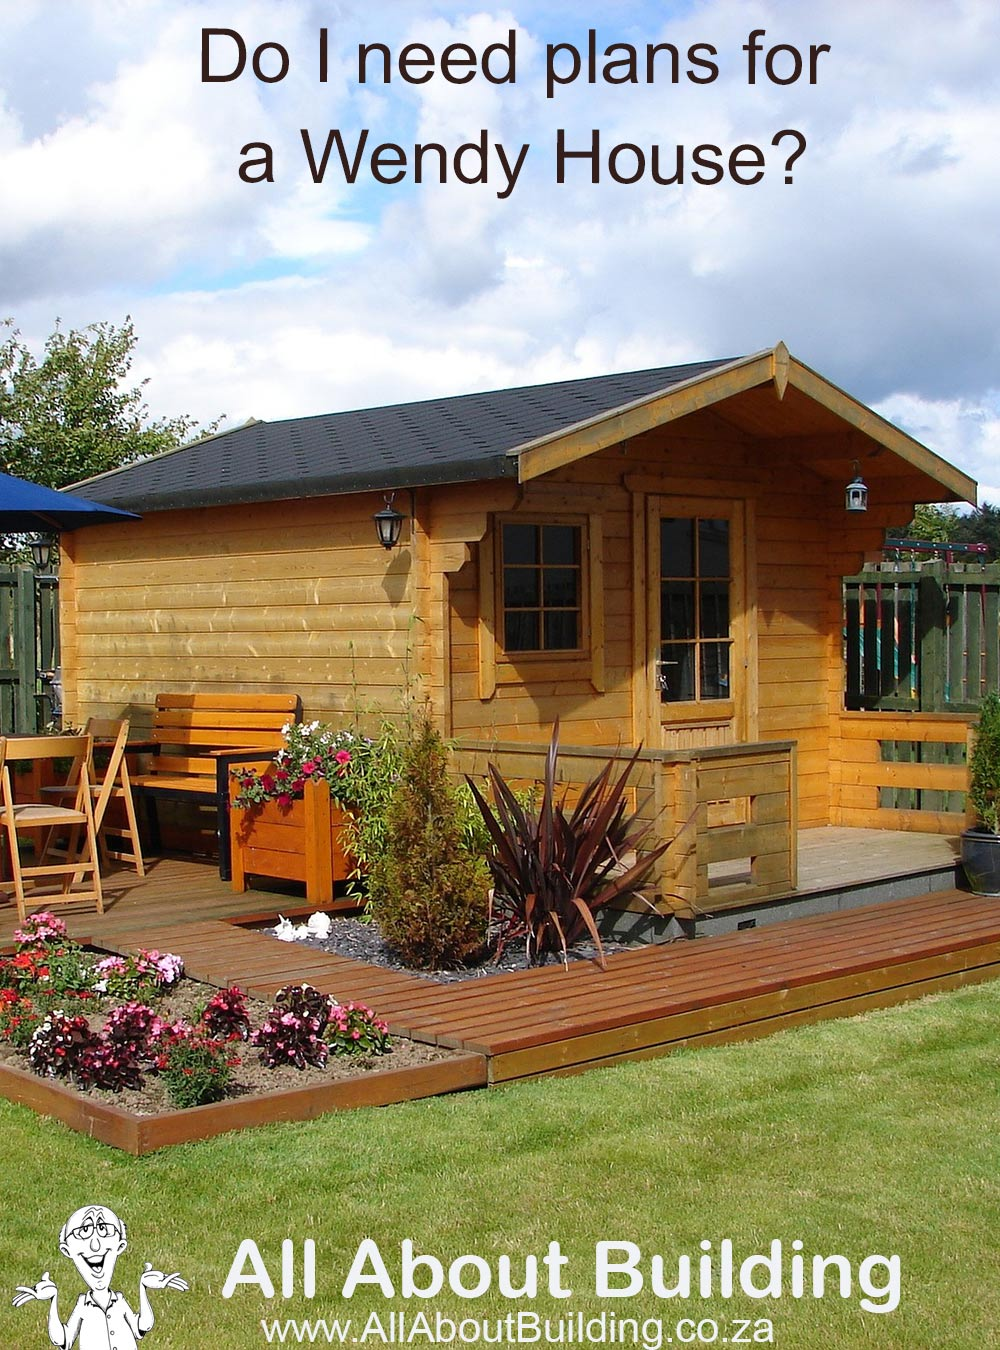 Do I need plans for a Wendy House